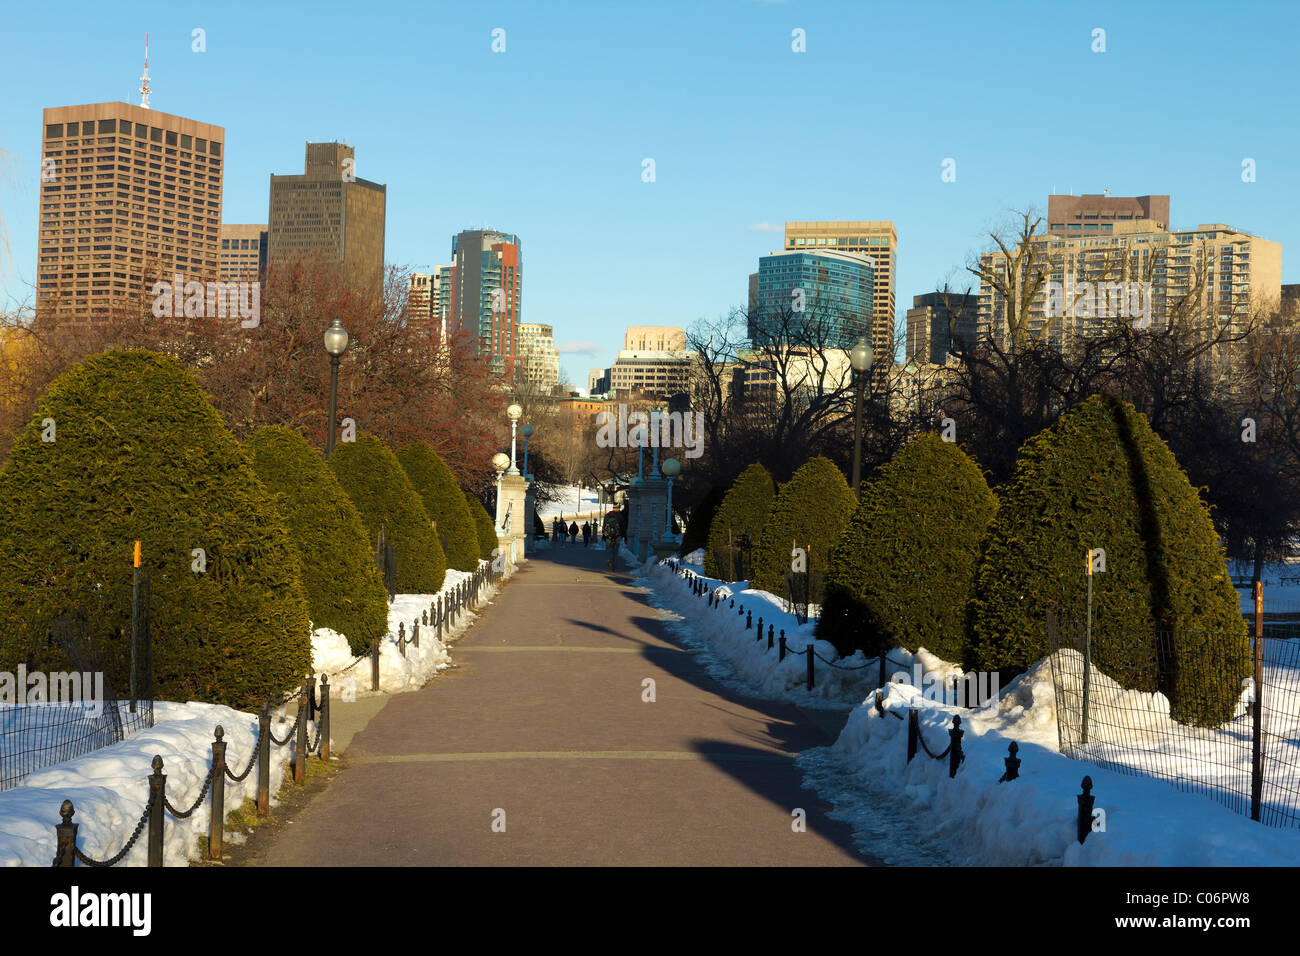 Boston Public Garden Snow Stock Photos & Boston Public Garden Snow ...